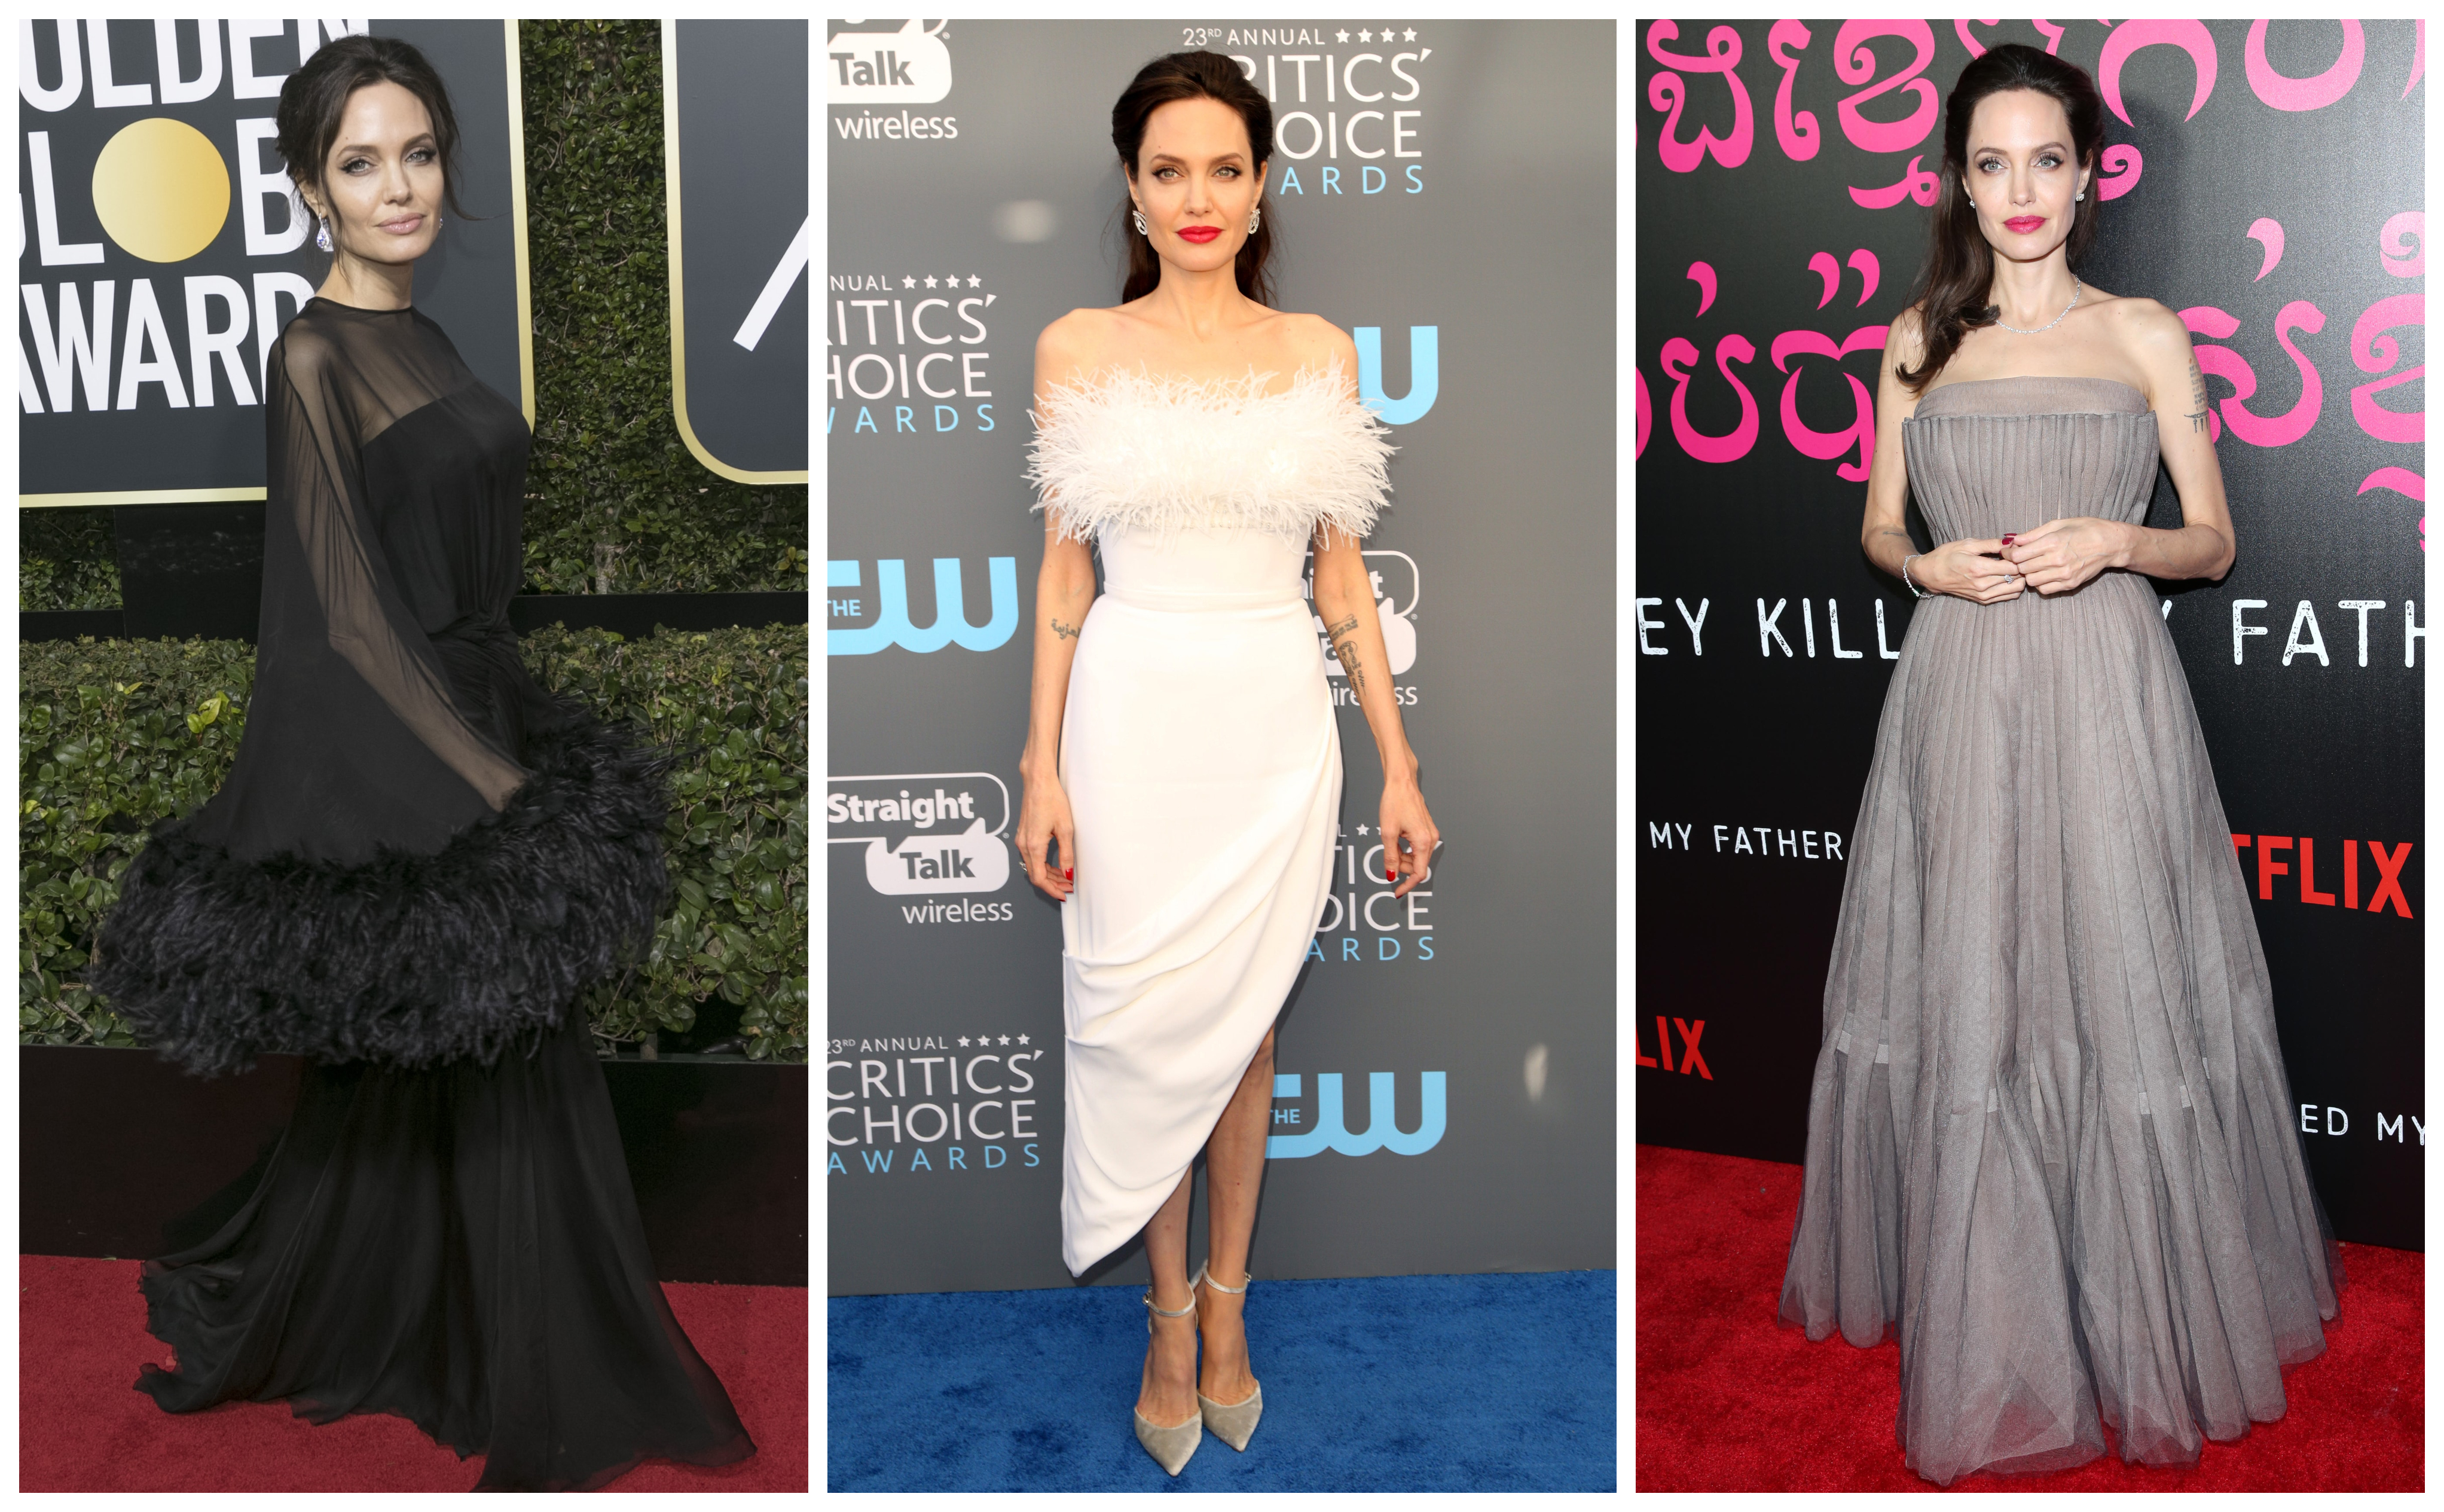 Angelina Jolie may no longer reign in Brad Pitt's heart, but there's no doubt she's still the Queen of neutrals. (Photos: WEN)